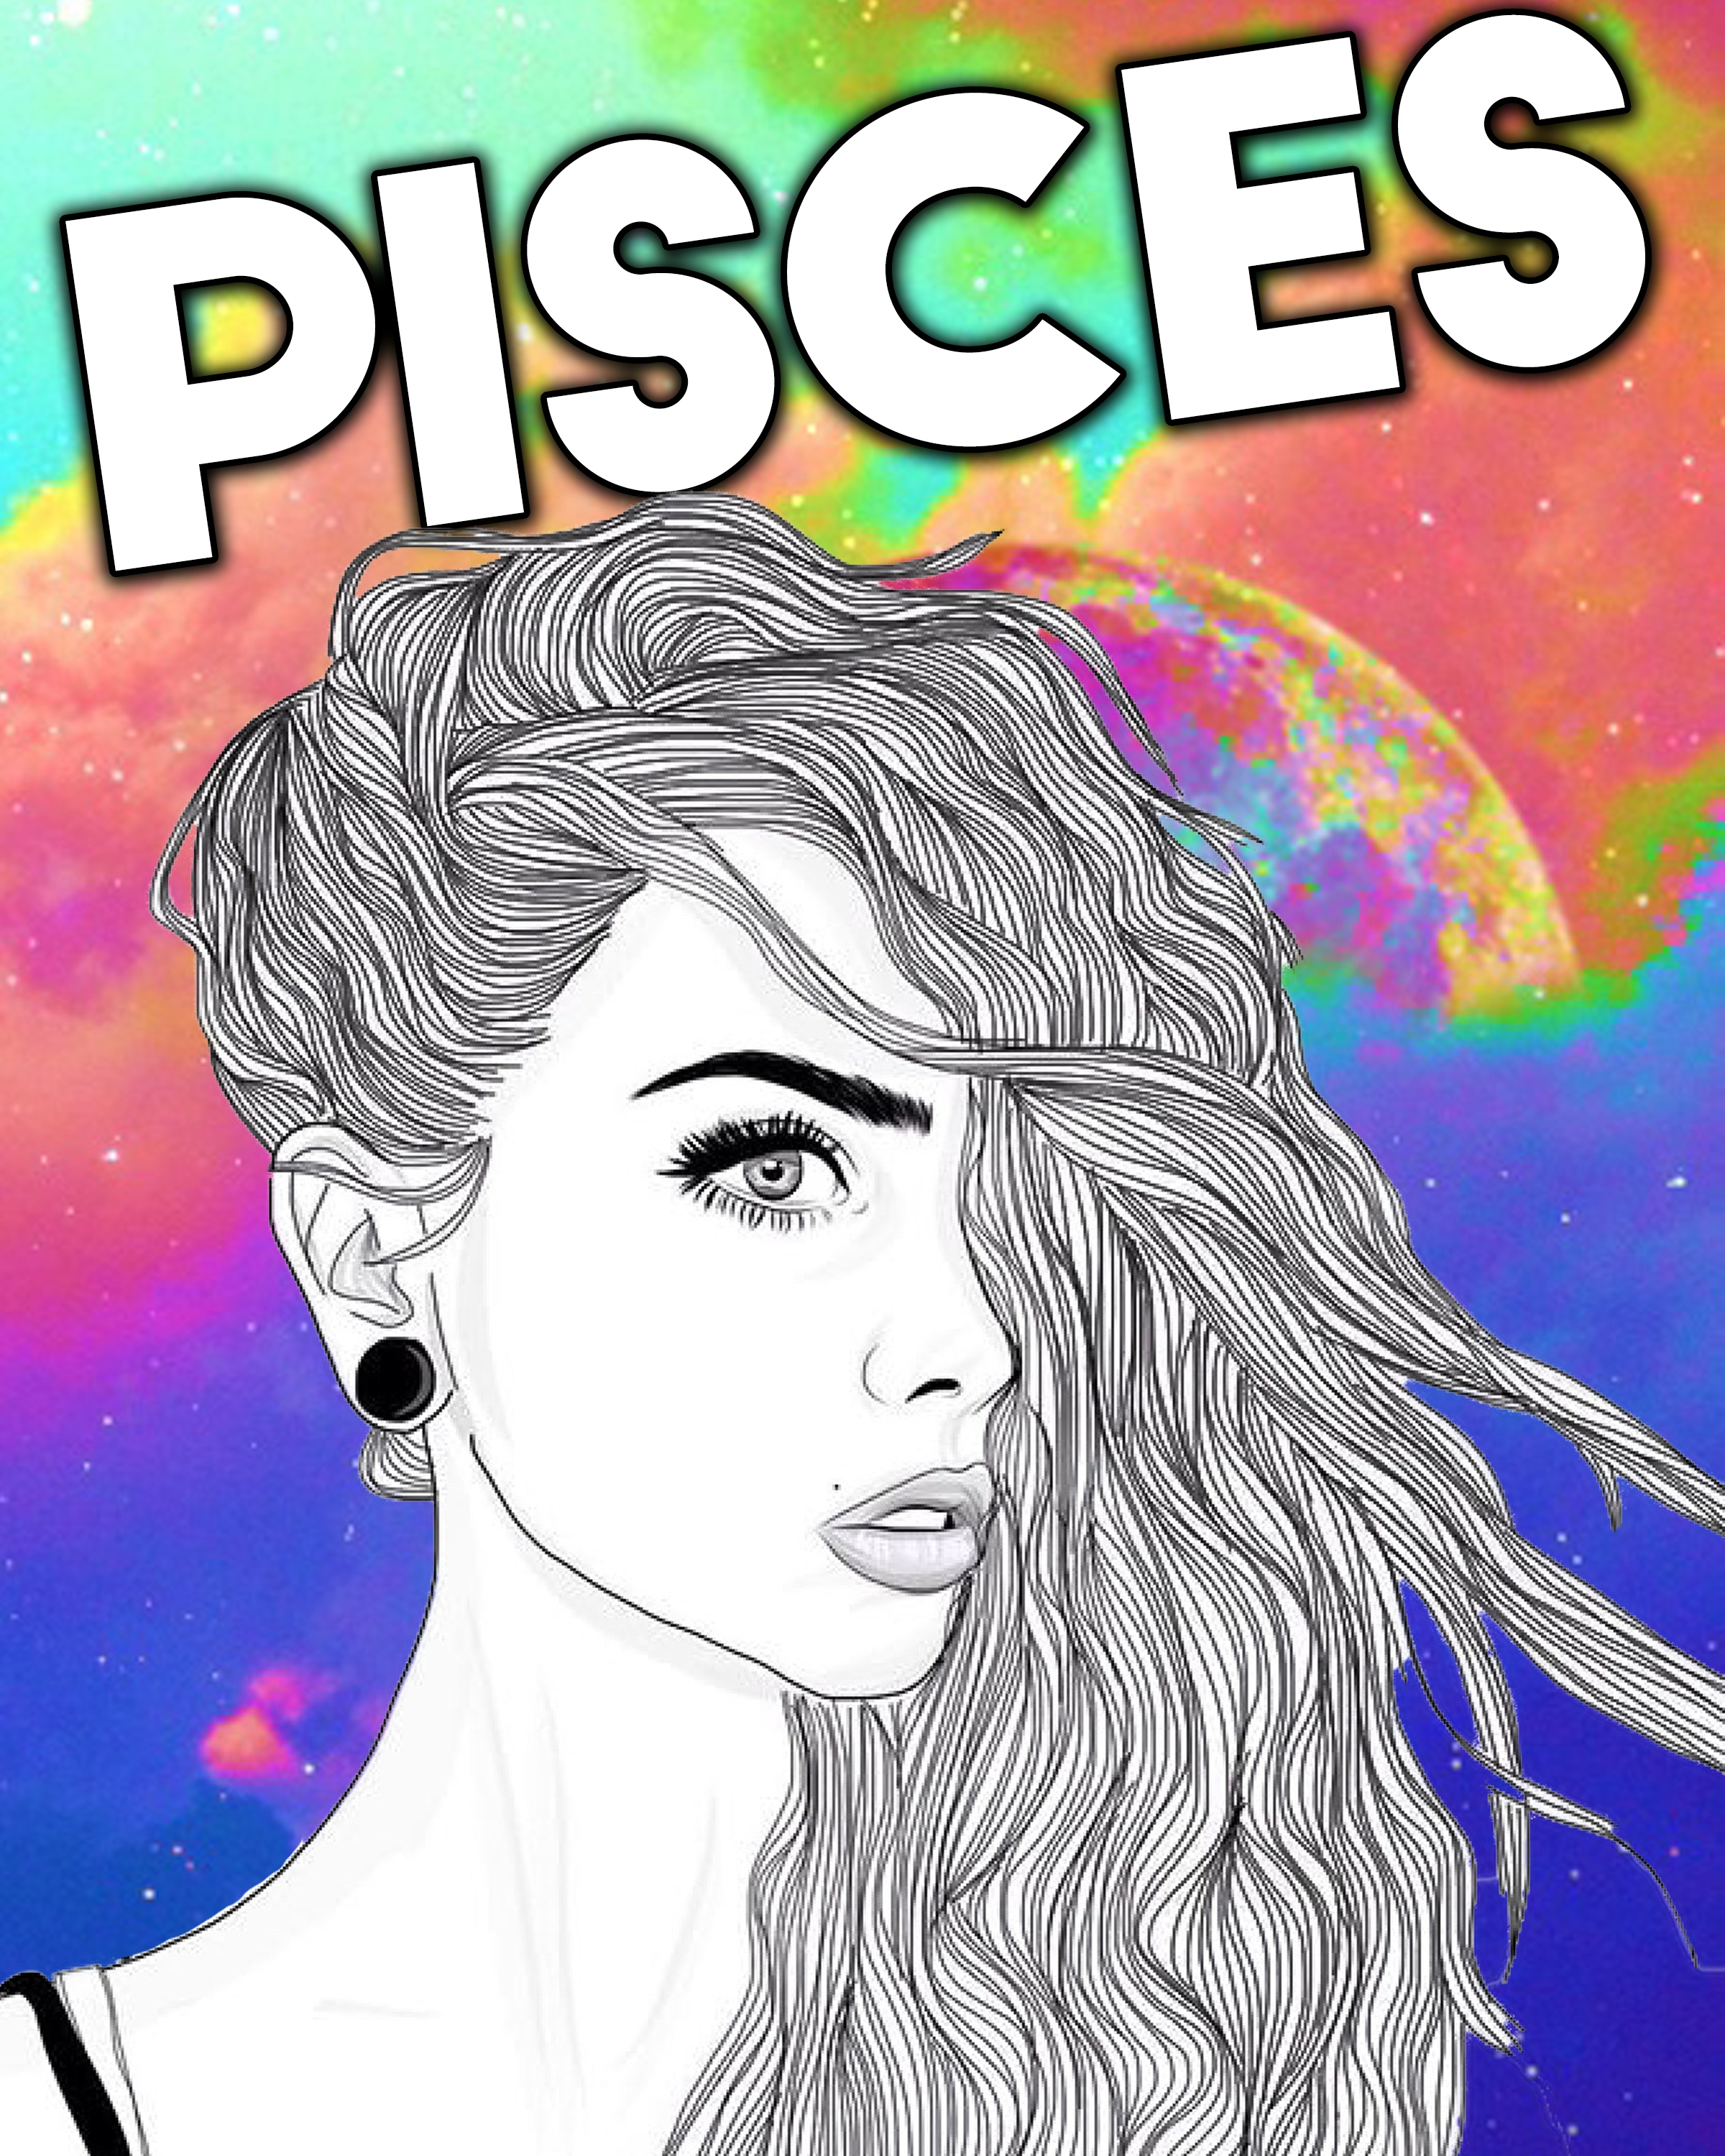 Pisces zodiac sign why he wants you back